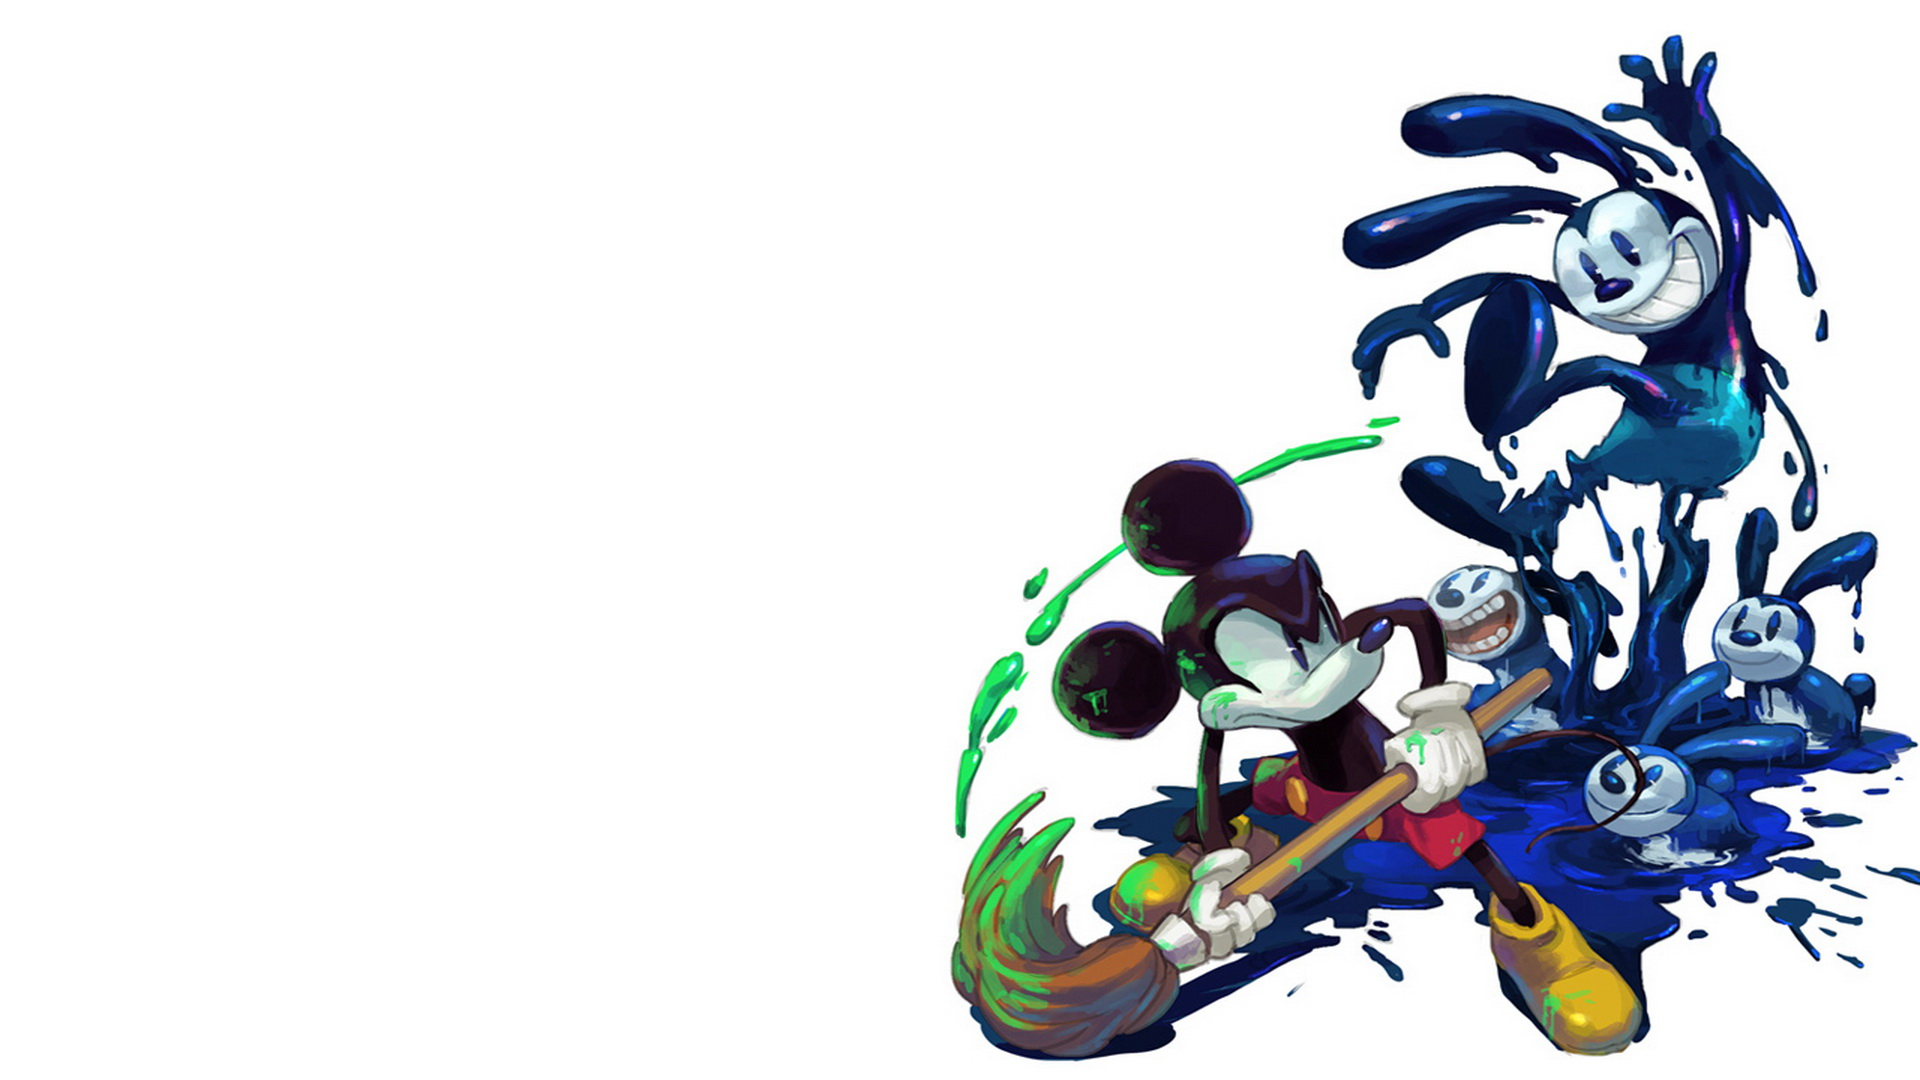 Free Download Mickey Mouse Wallpapers 10 Hd Desktop Wallpapers